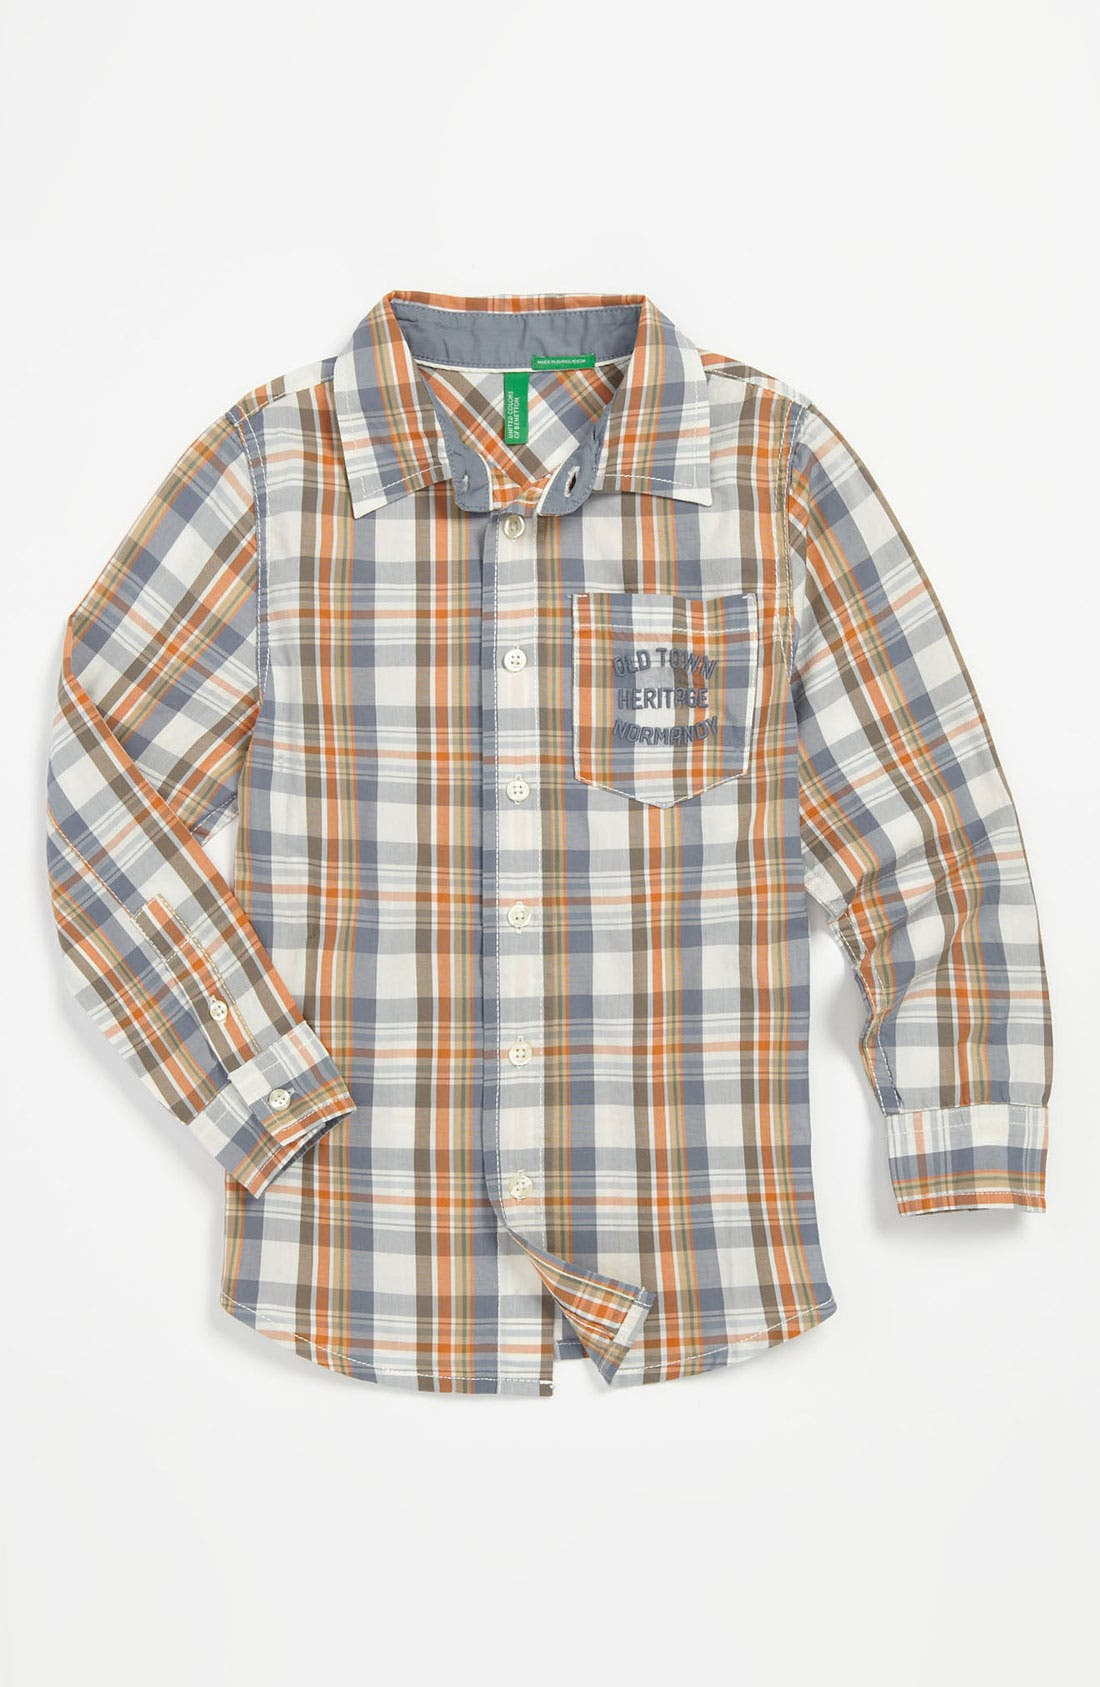 Main Image - United Colors of Benetton Kids Woven Shirt (Toddler)